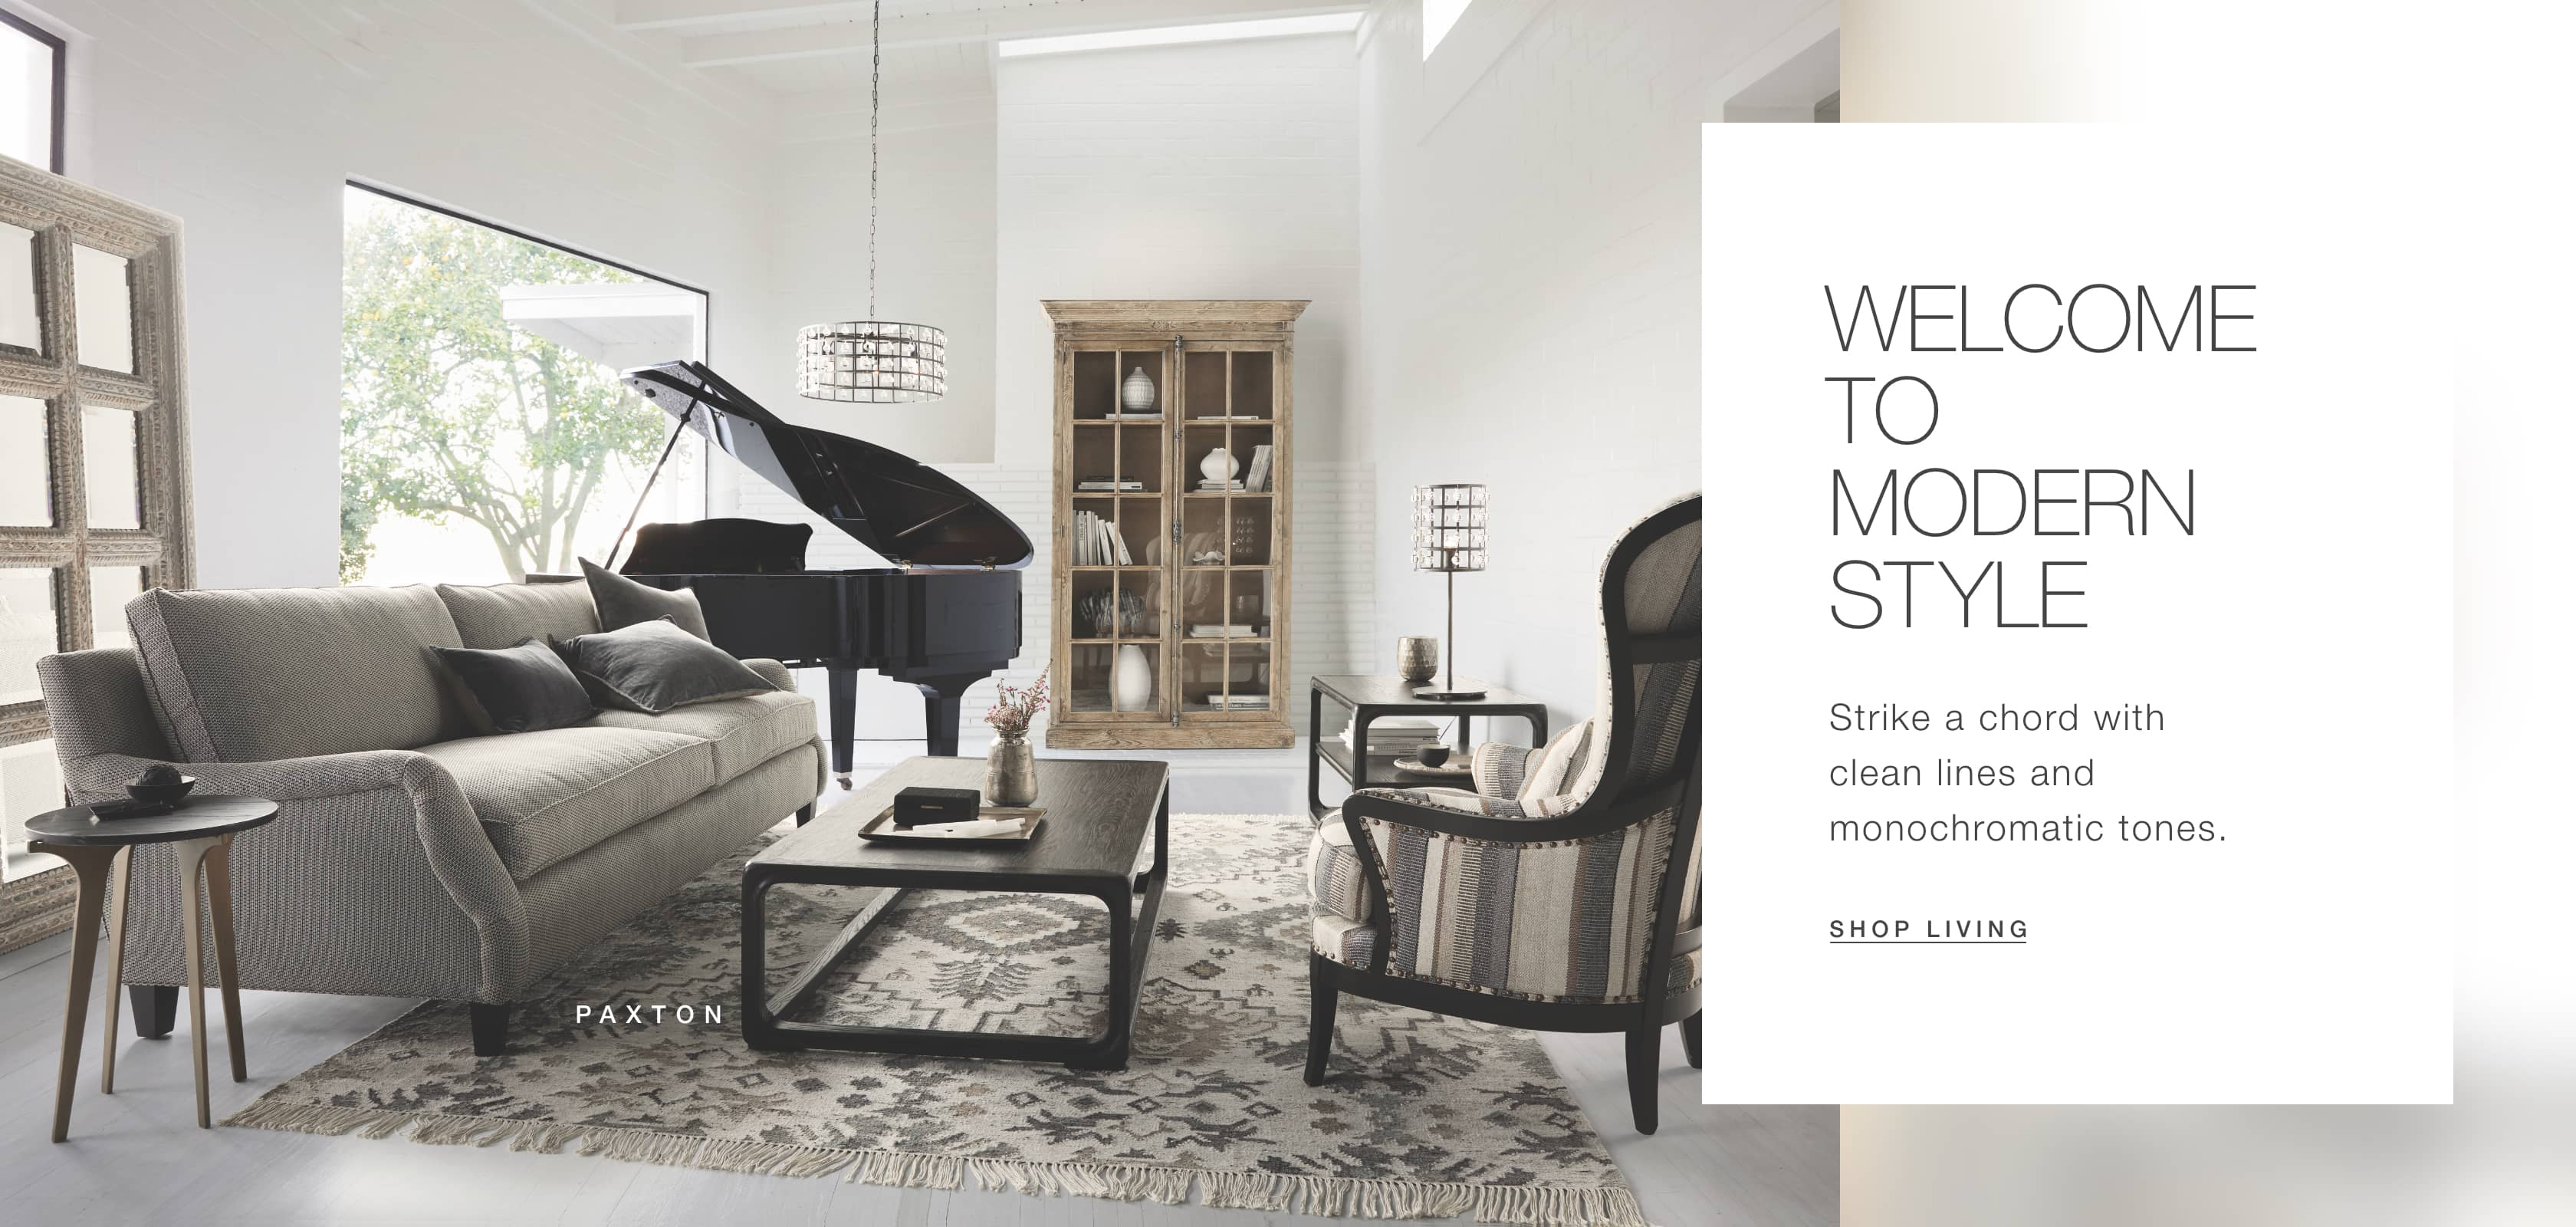 Shop Arhaus Living